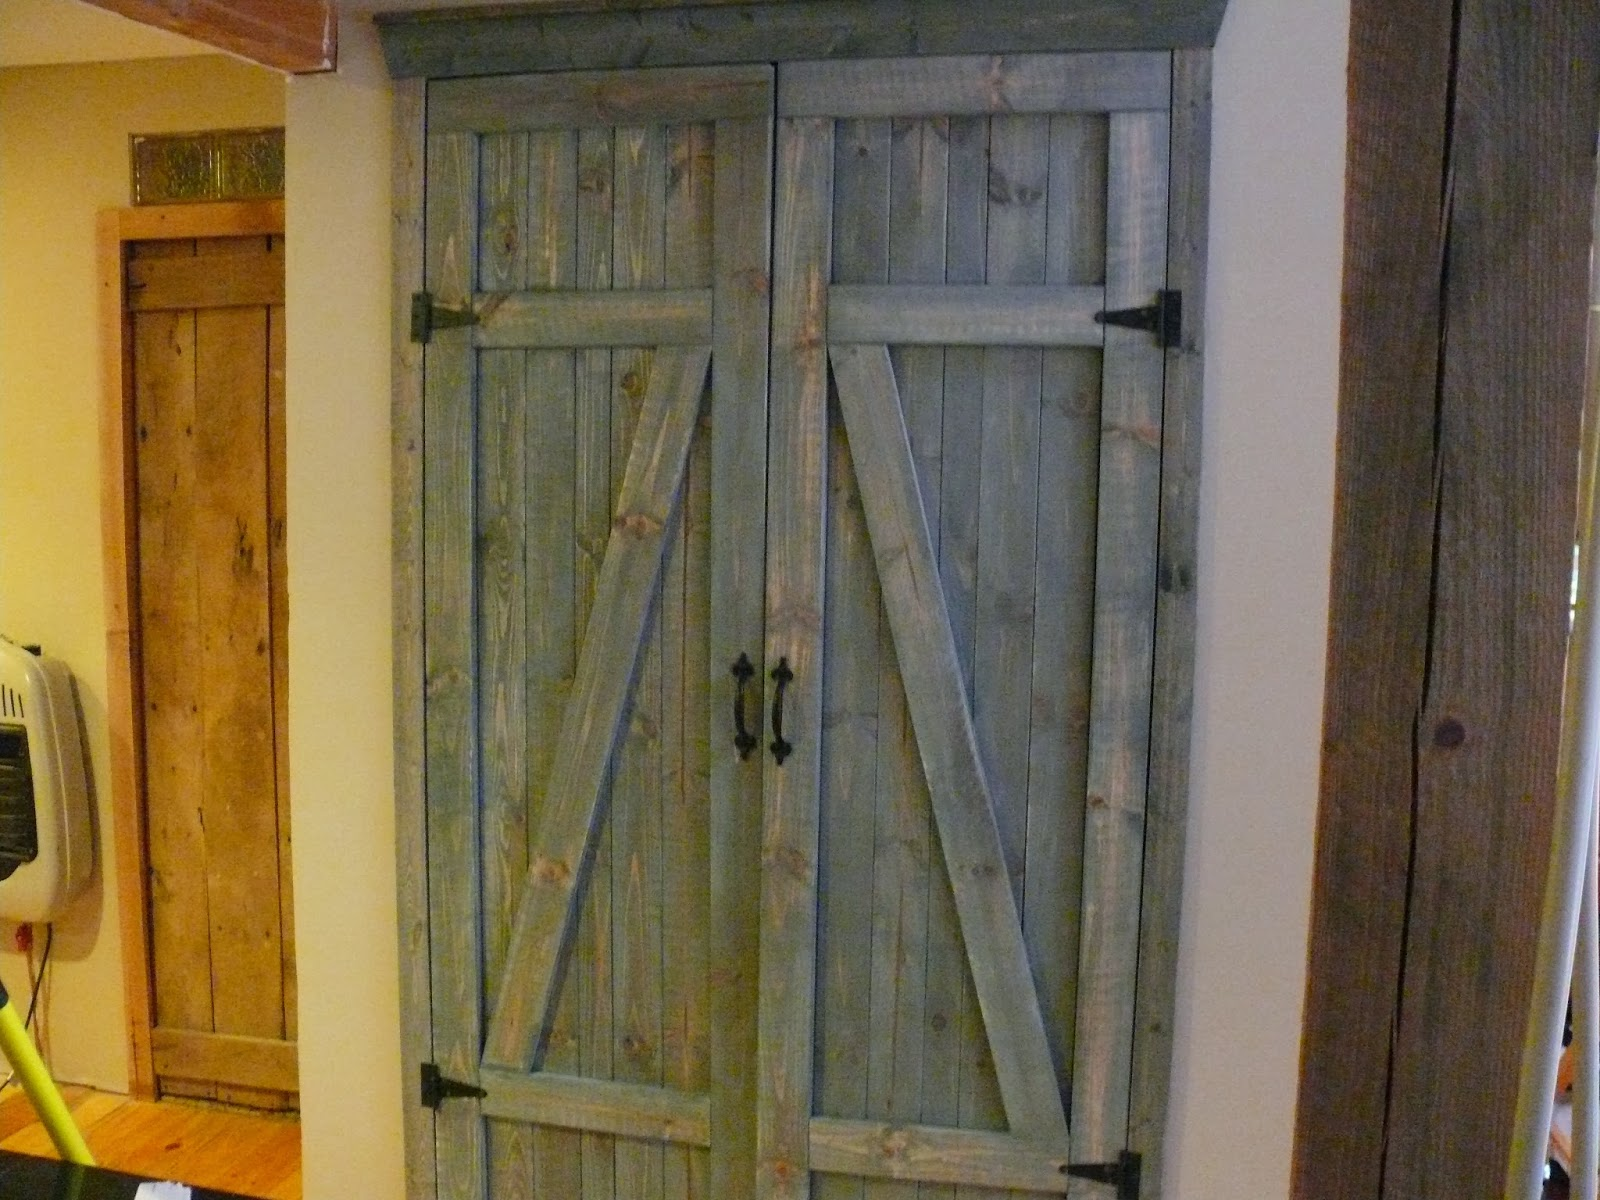 Amazing We Found This Plan For The Barn Doors On The Internet. Not Only Does This  Look Better But The Dryer Is A Lot Less Noisy.